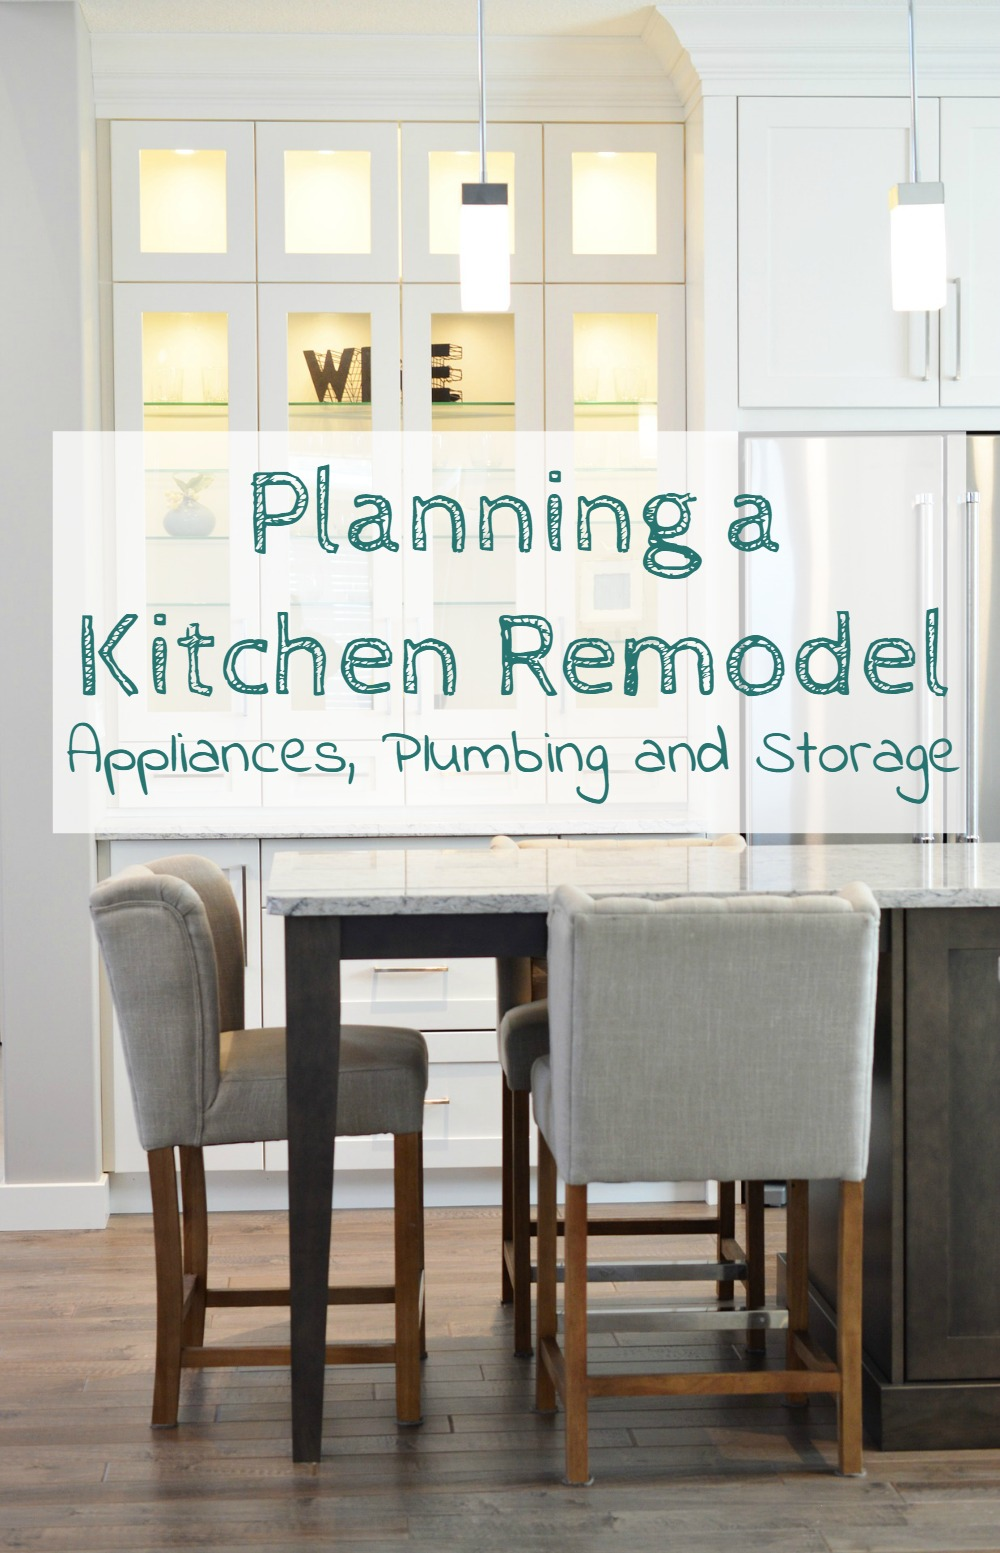 How to plan a kitchen remodel - appliances, plumbing, storage